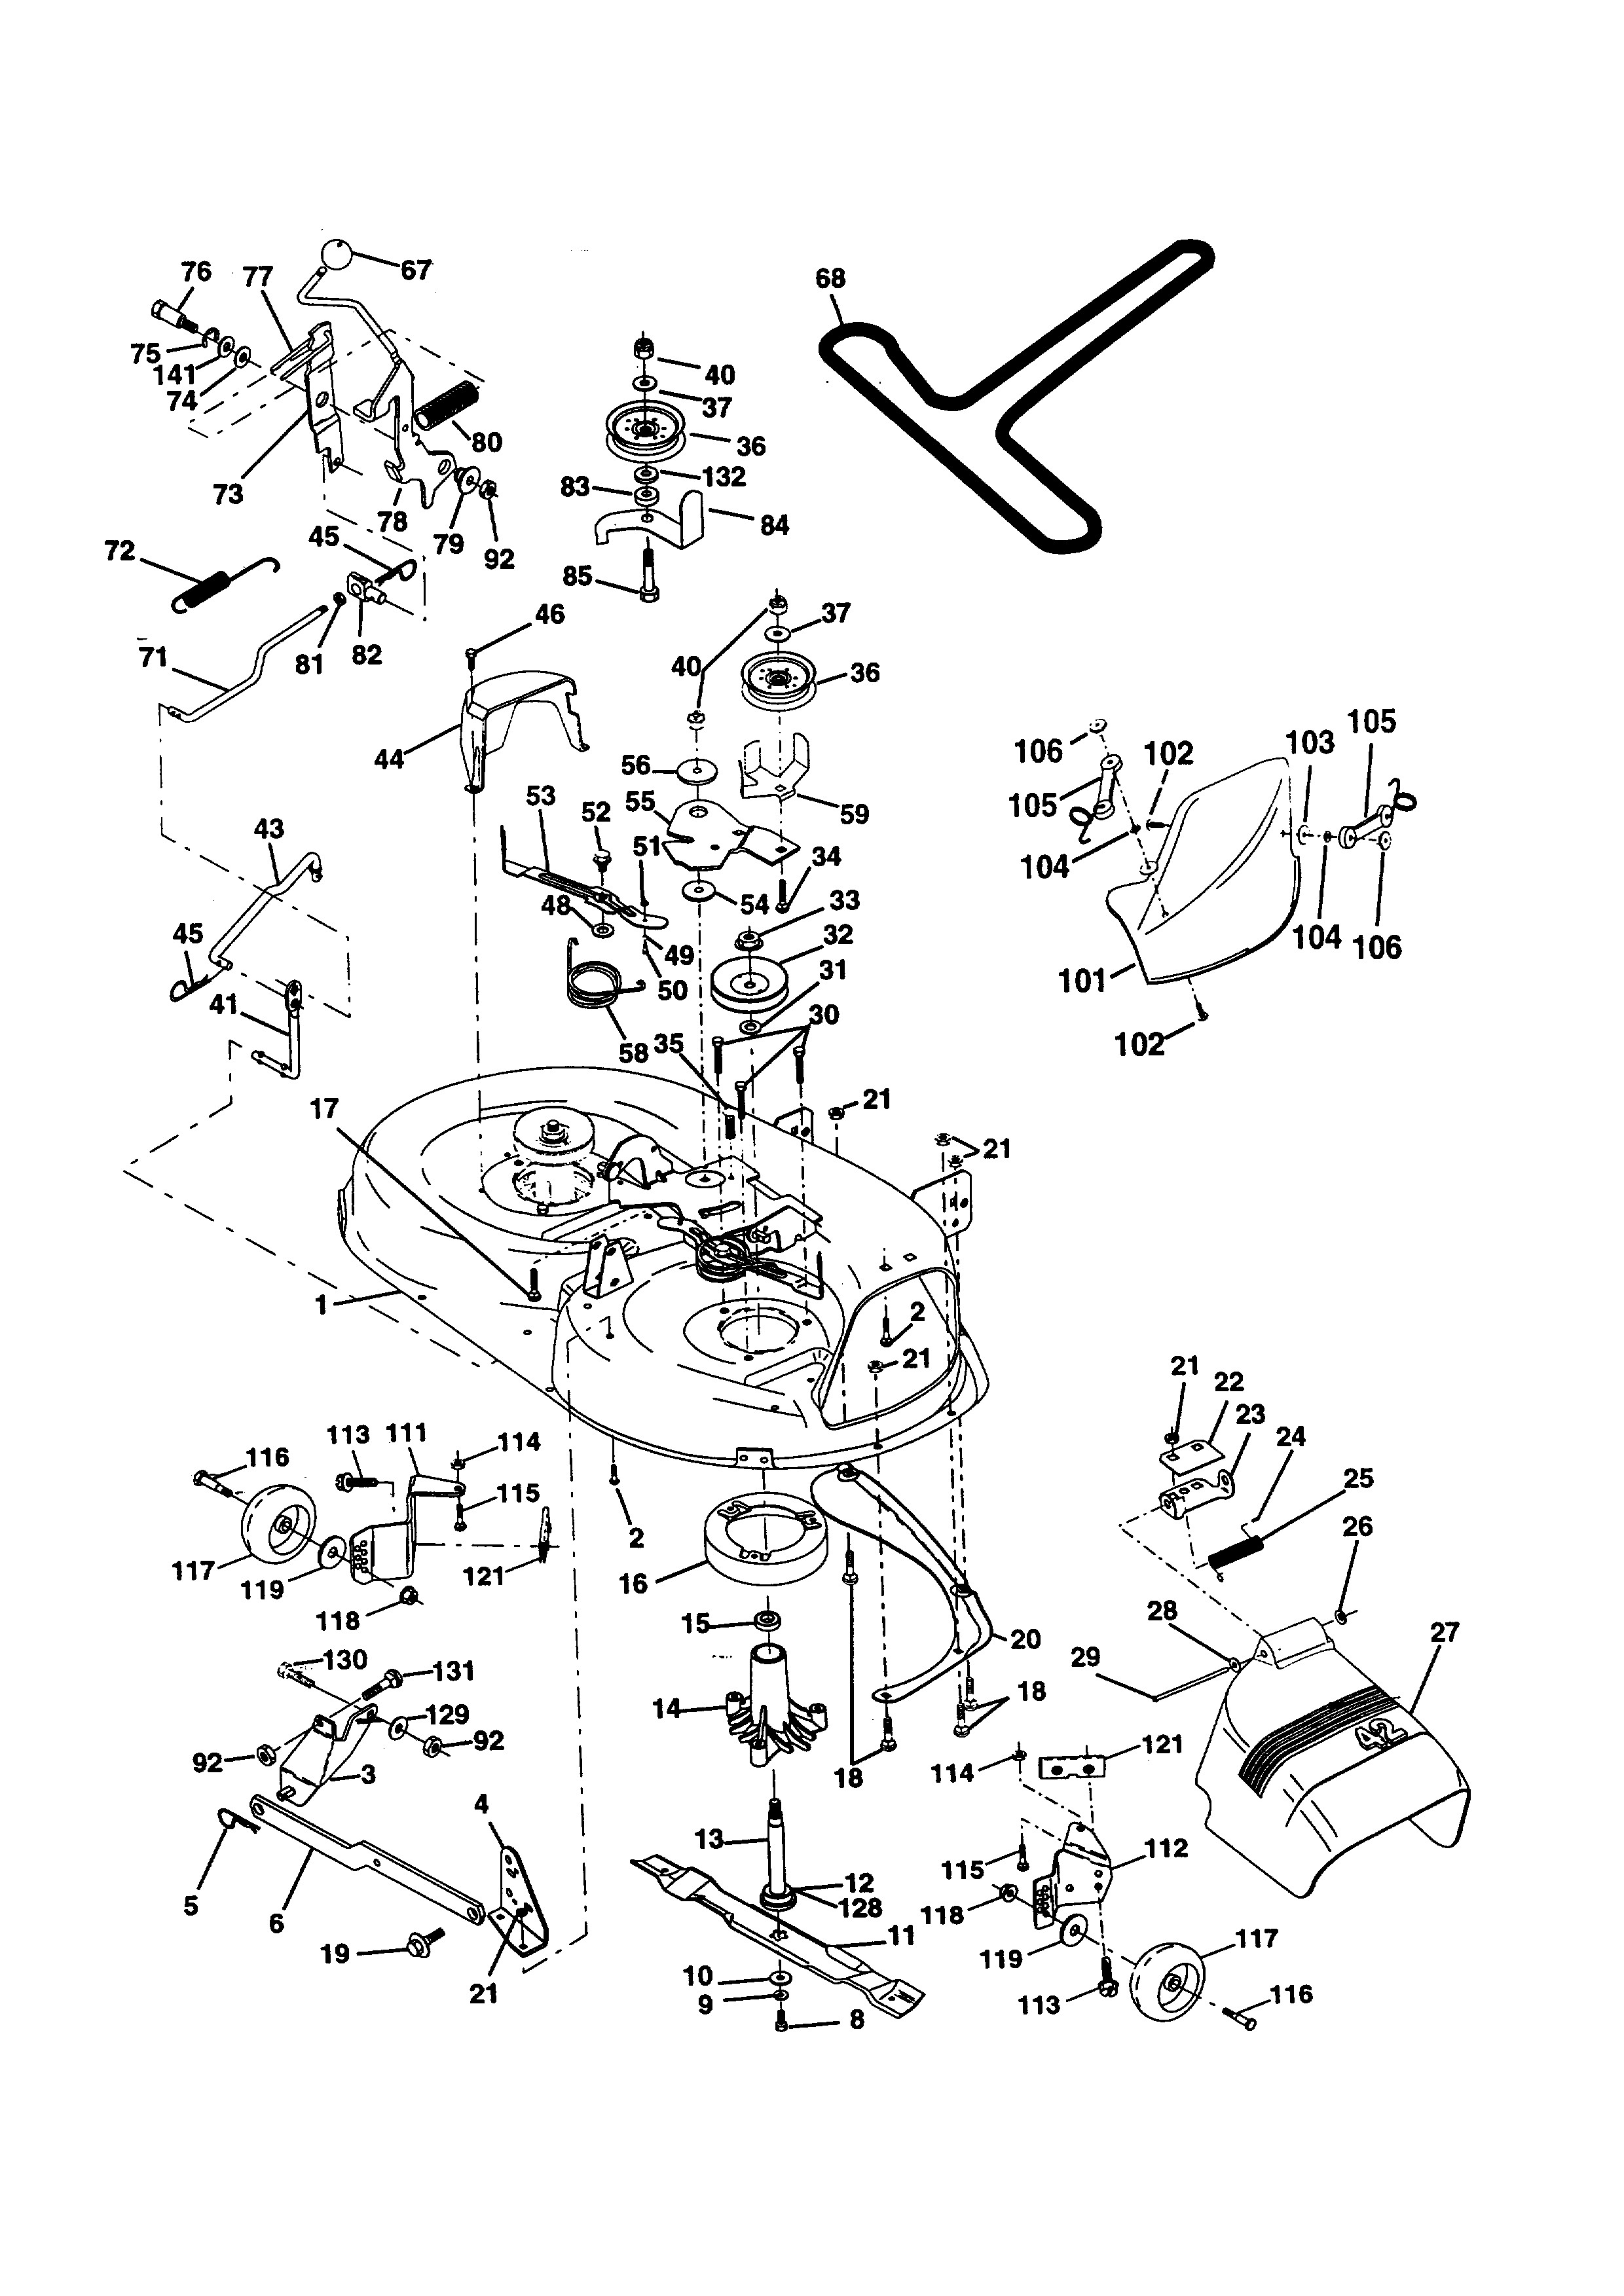 Craftsman Riding Mower Engine Diagram Western Auto Model Ayp9187b89 Lawn Tractor Genuine Parts Of Craftsman Riding Mower Engine Diagram